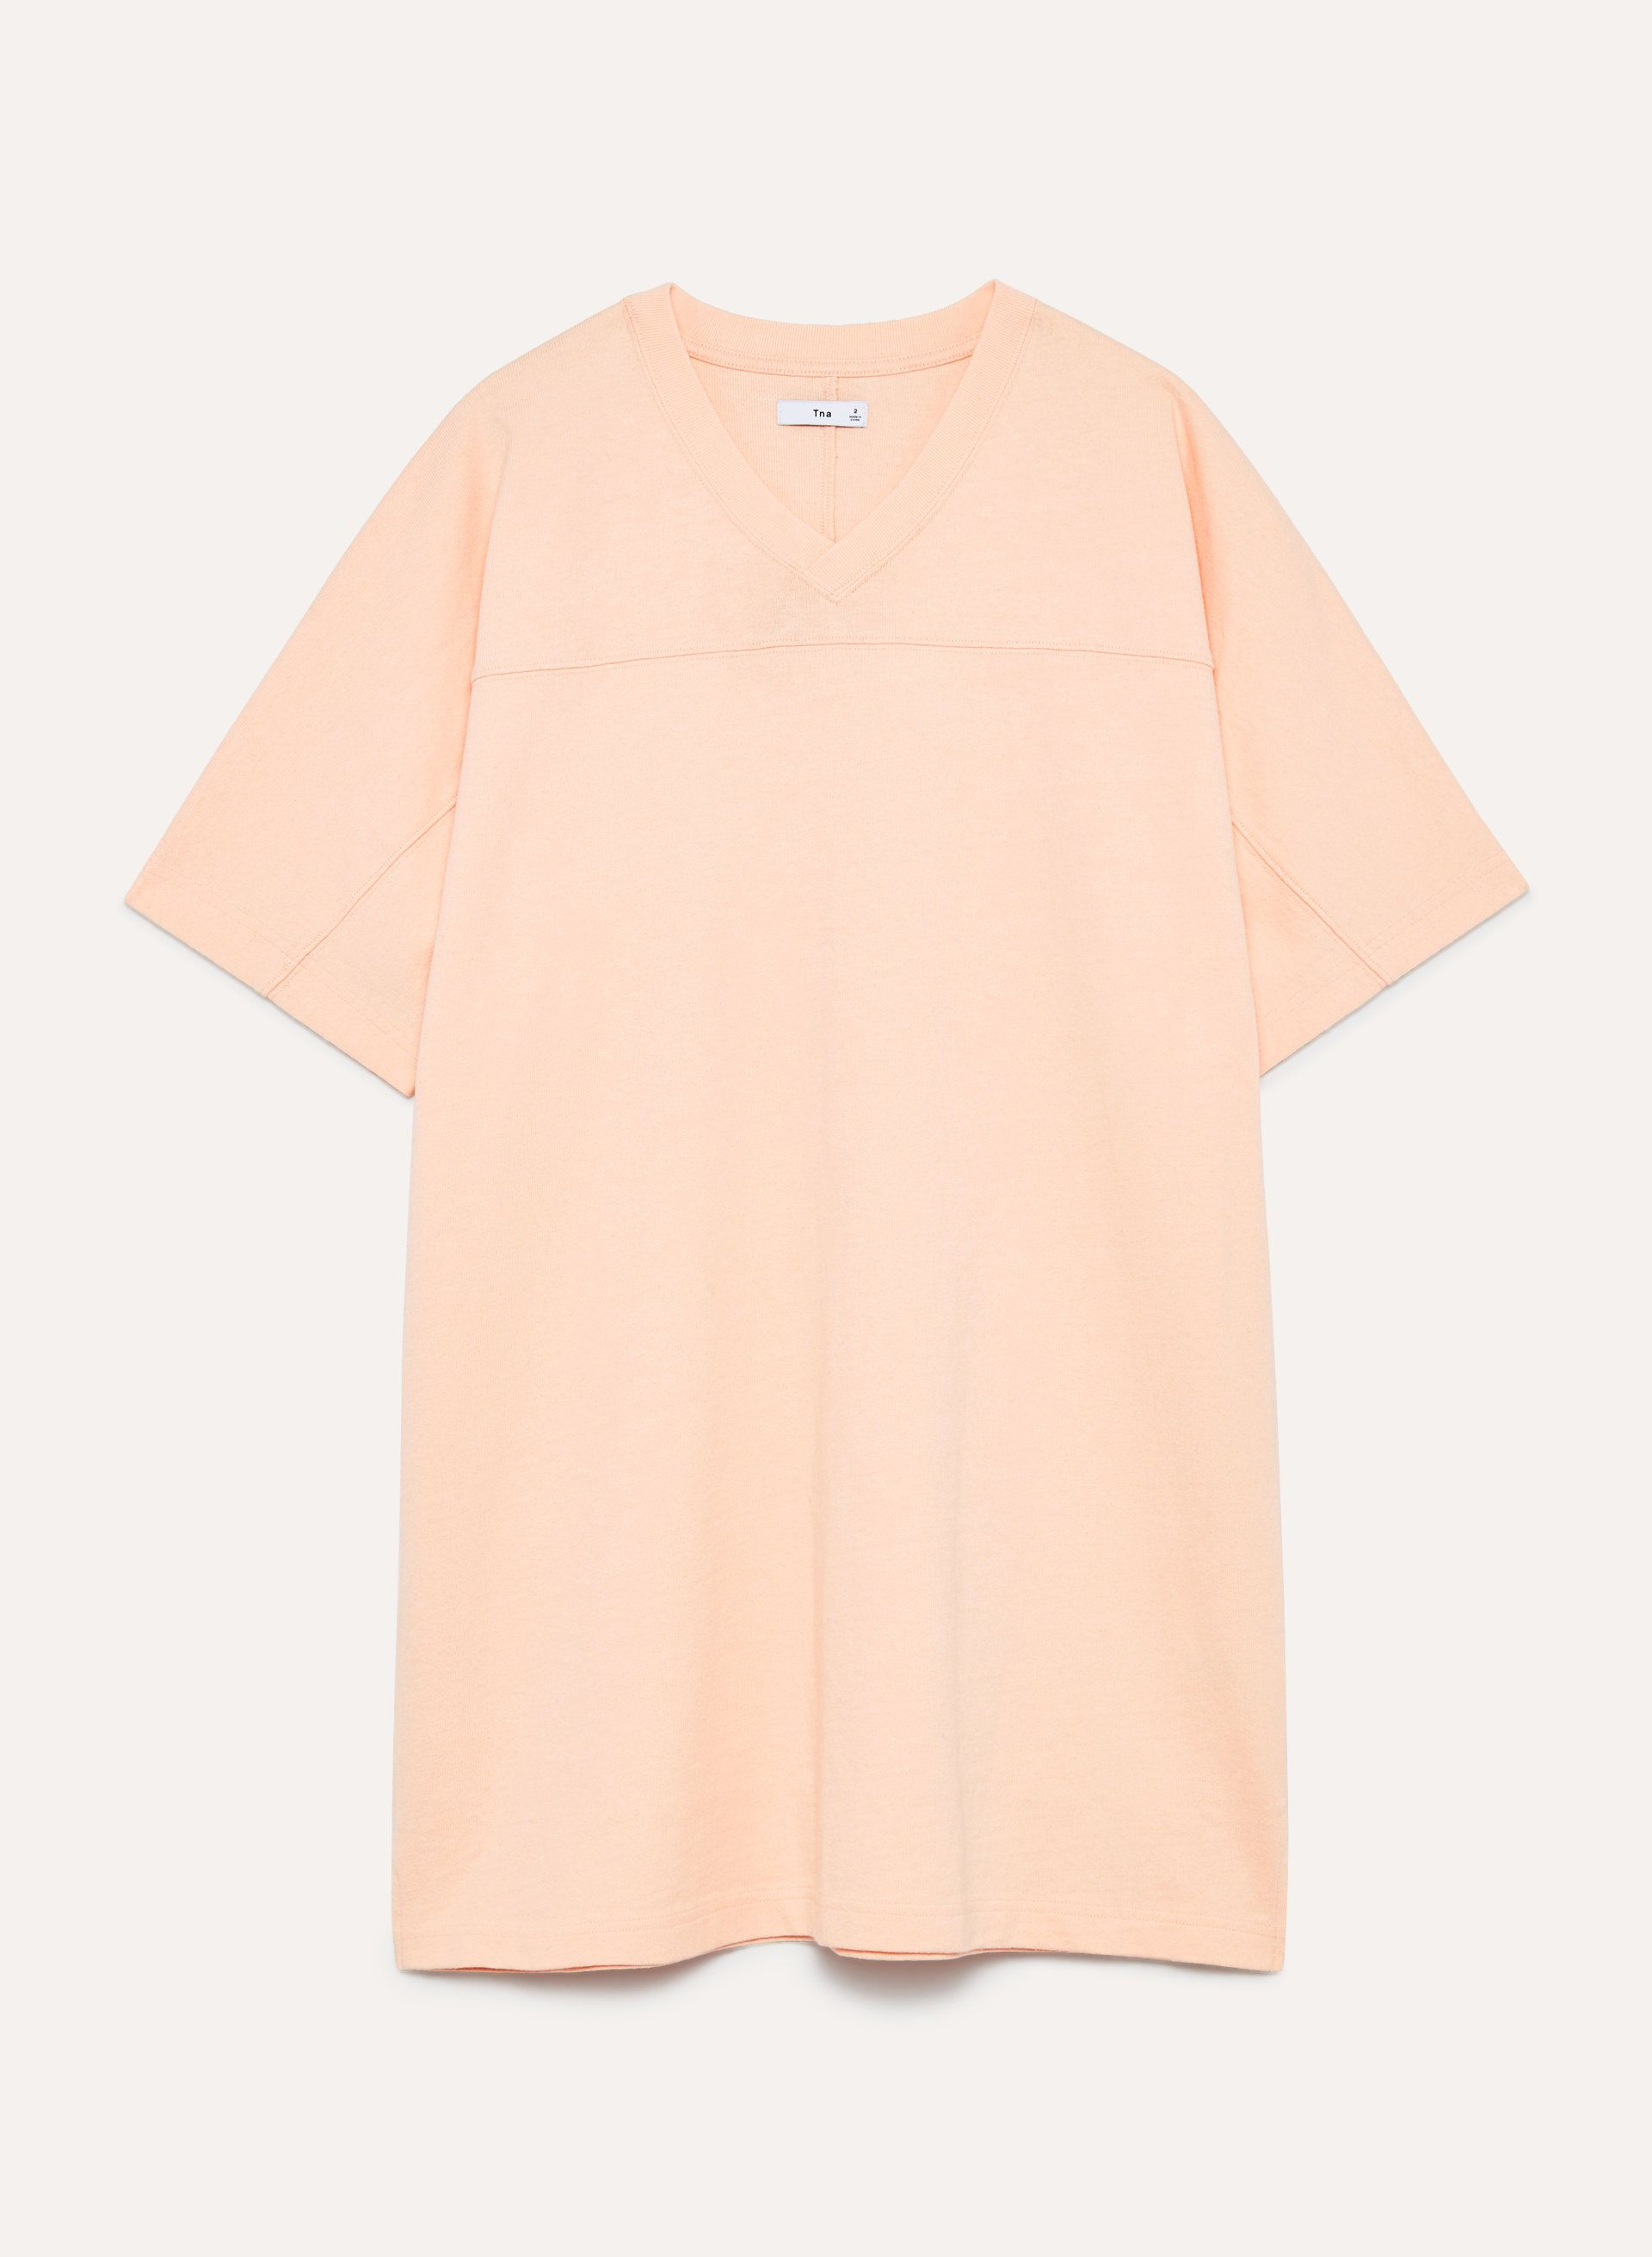 2e28d63eabb51 Tna PHARRELL DRESS | Aritzia | Clothes | Dresses, Fashion, Shirt Dress